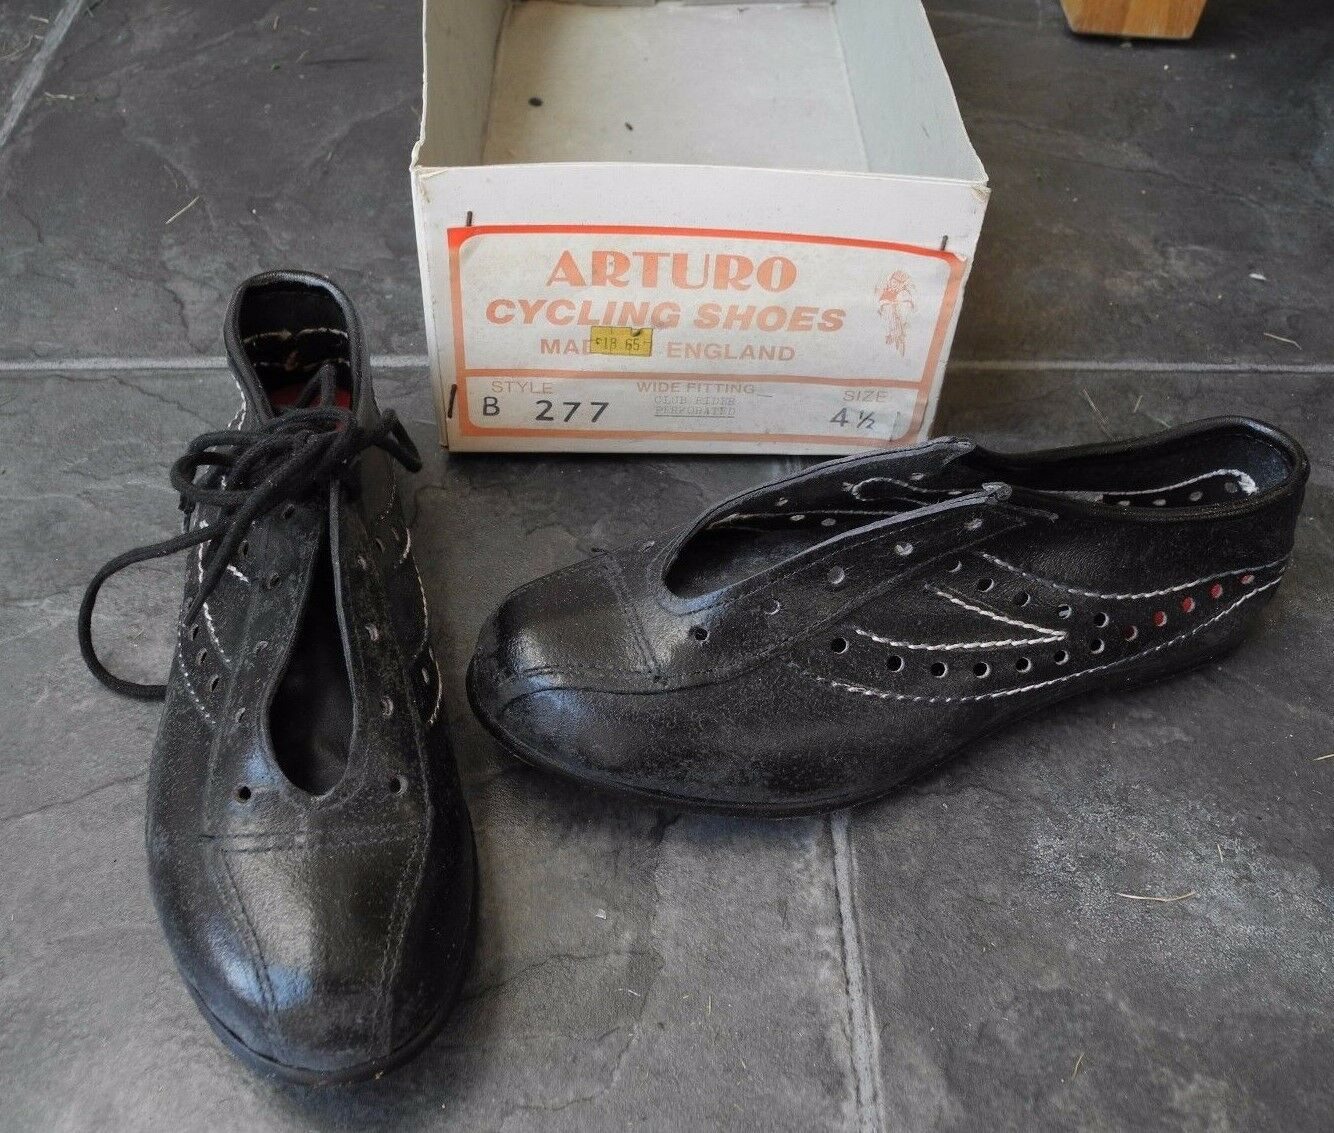 Arturo leather Cycling shoes, size 4 1 2, vintage NOS